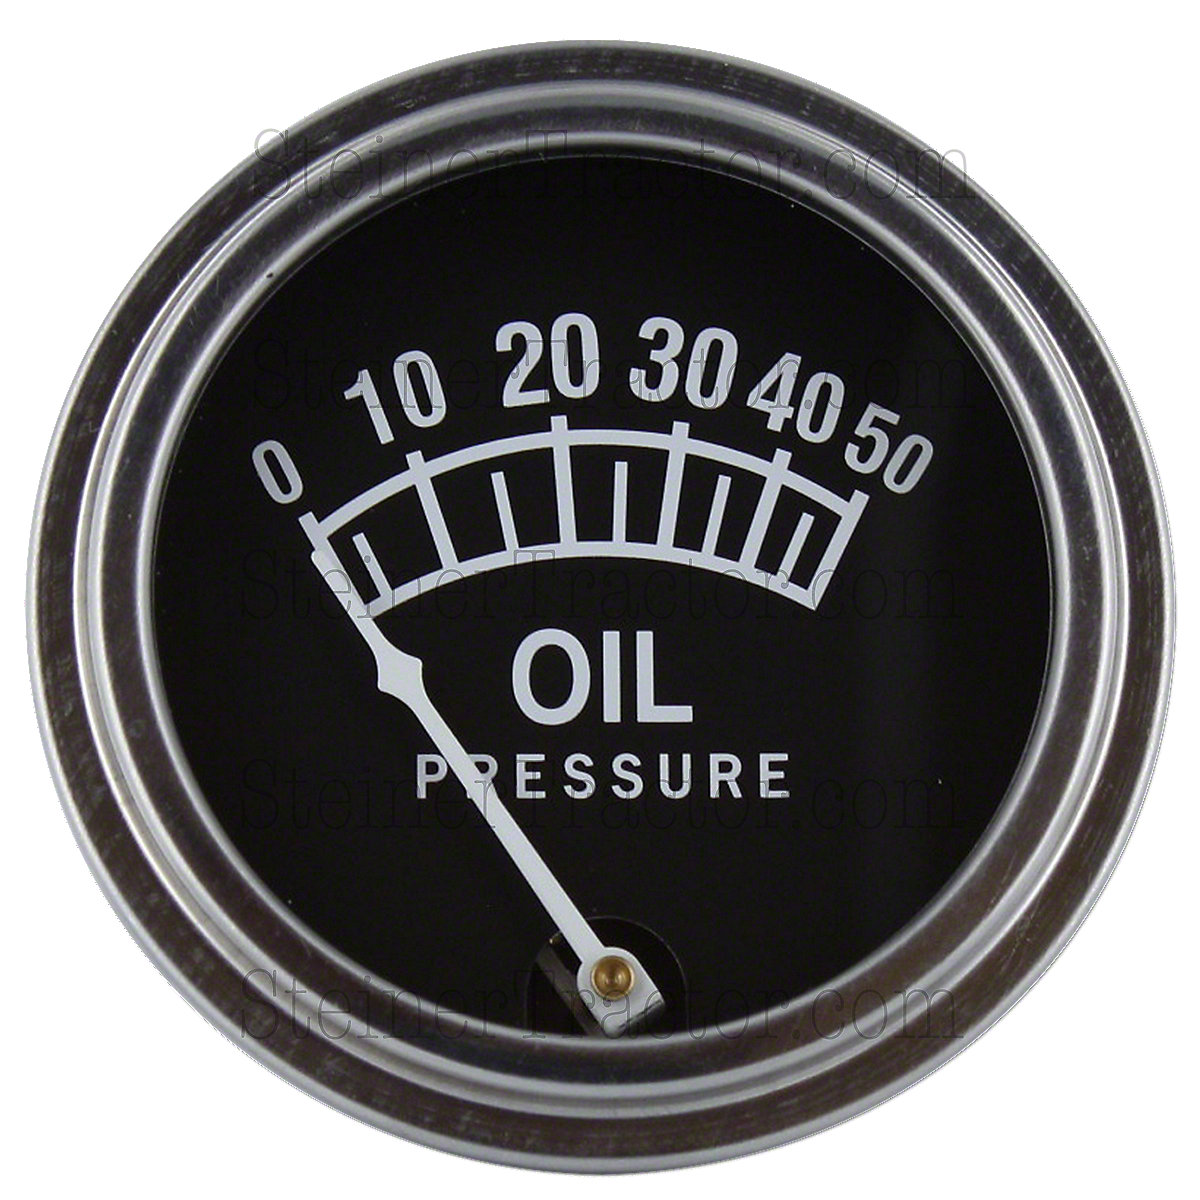 Oil Pressure Gauge For Allis Chalmers D10, D12, D14, D15, D17 , H3, I40, I400, I60, I600, WD45.